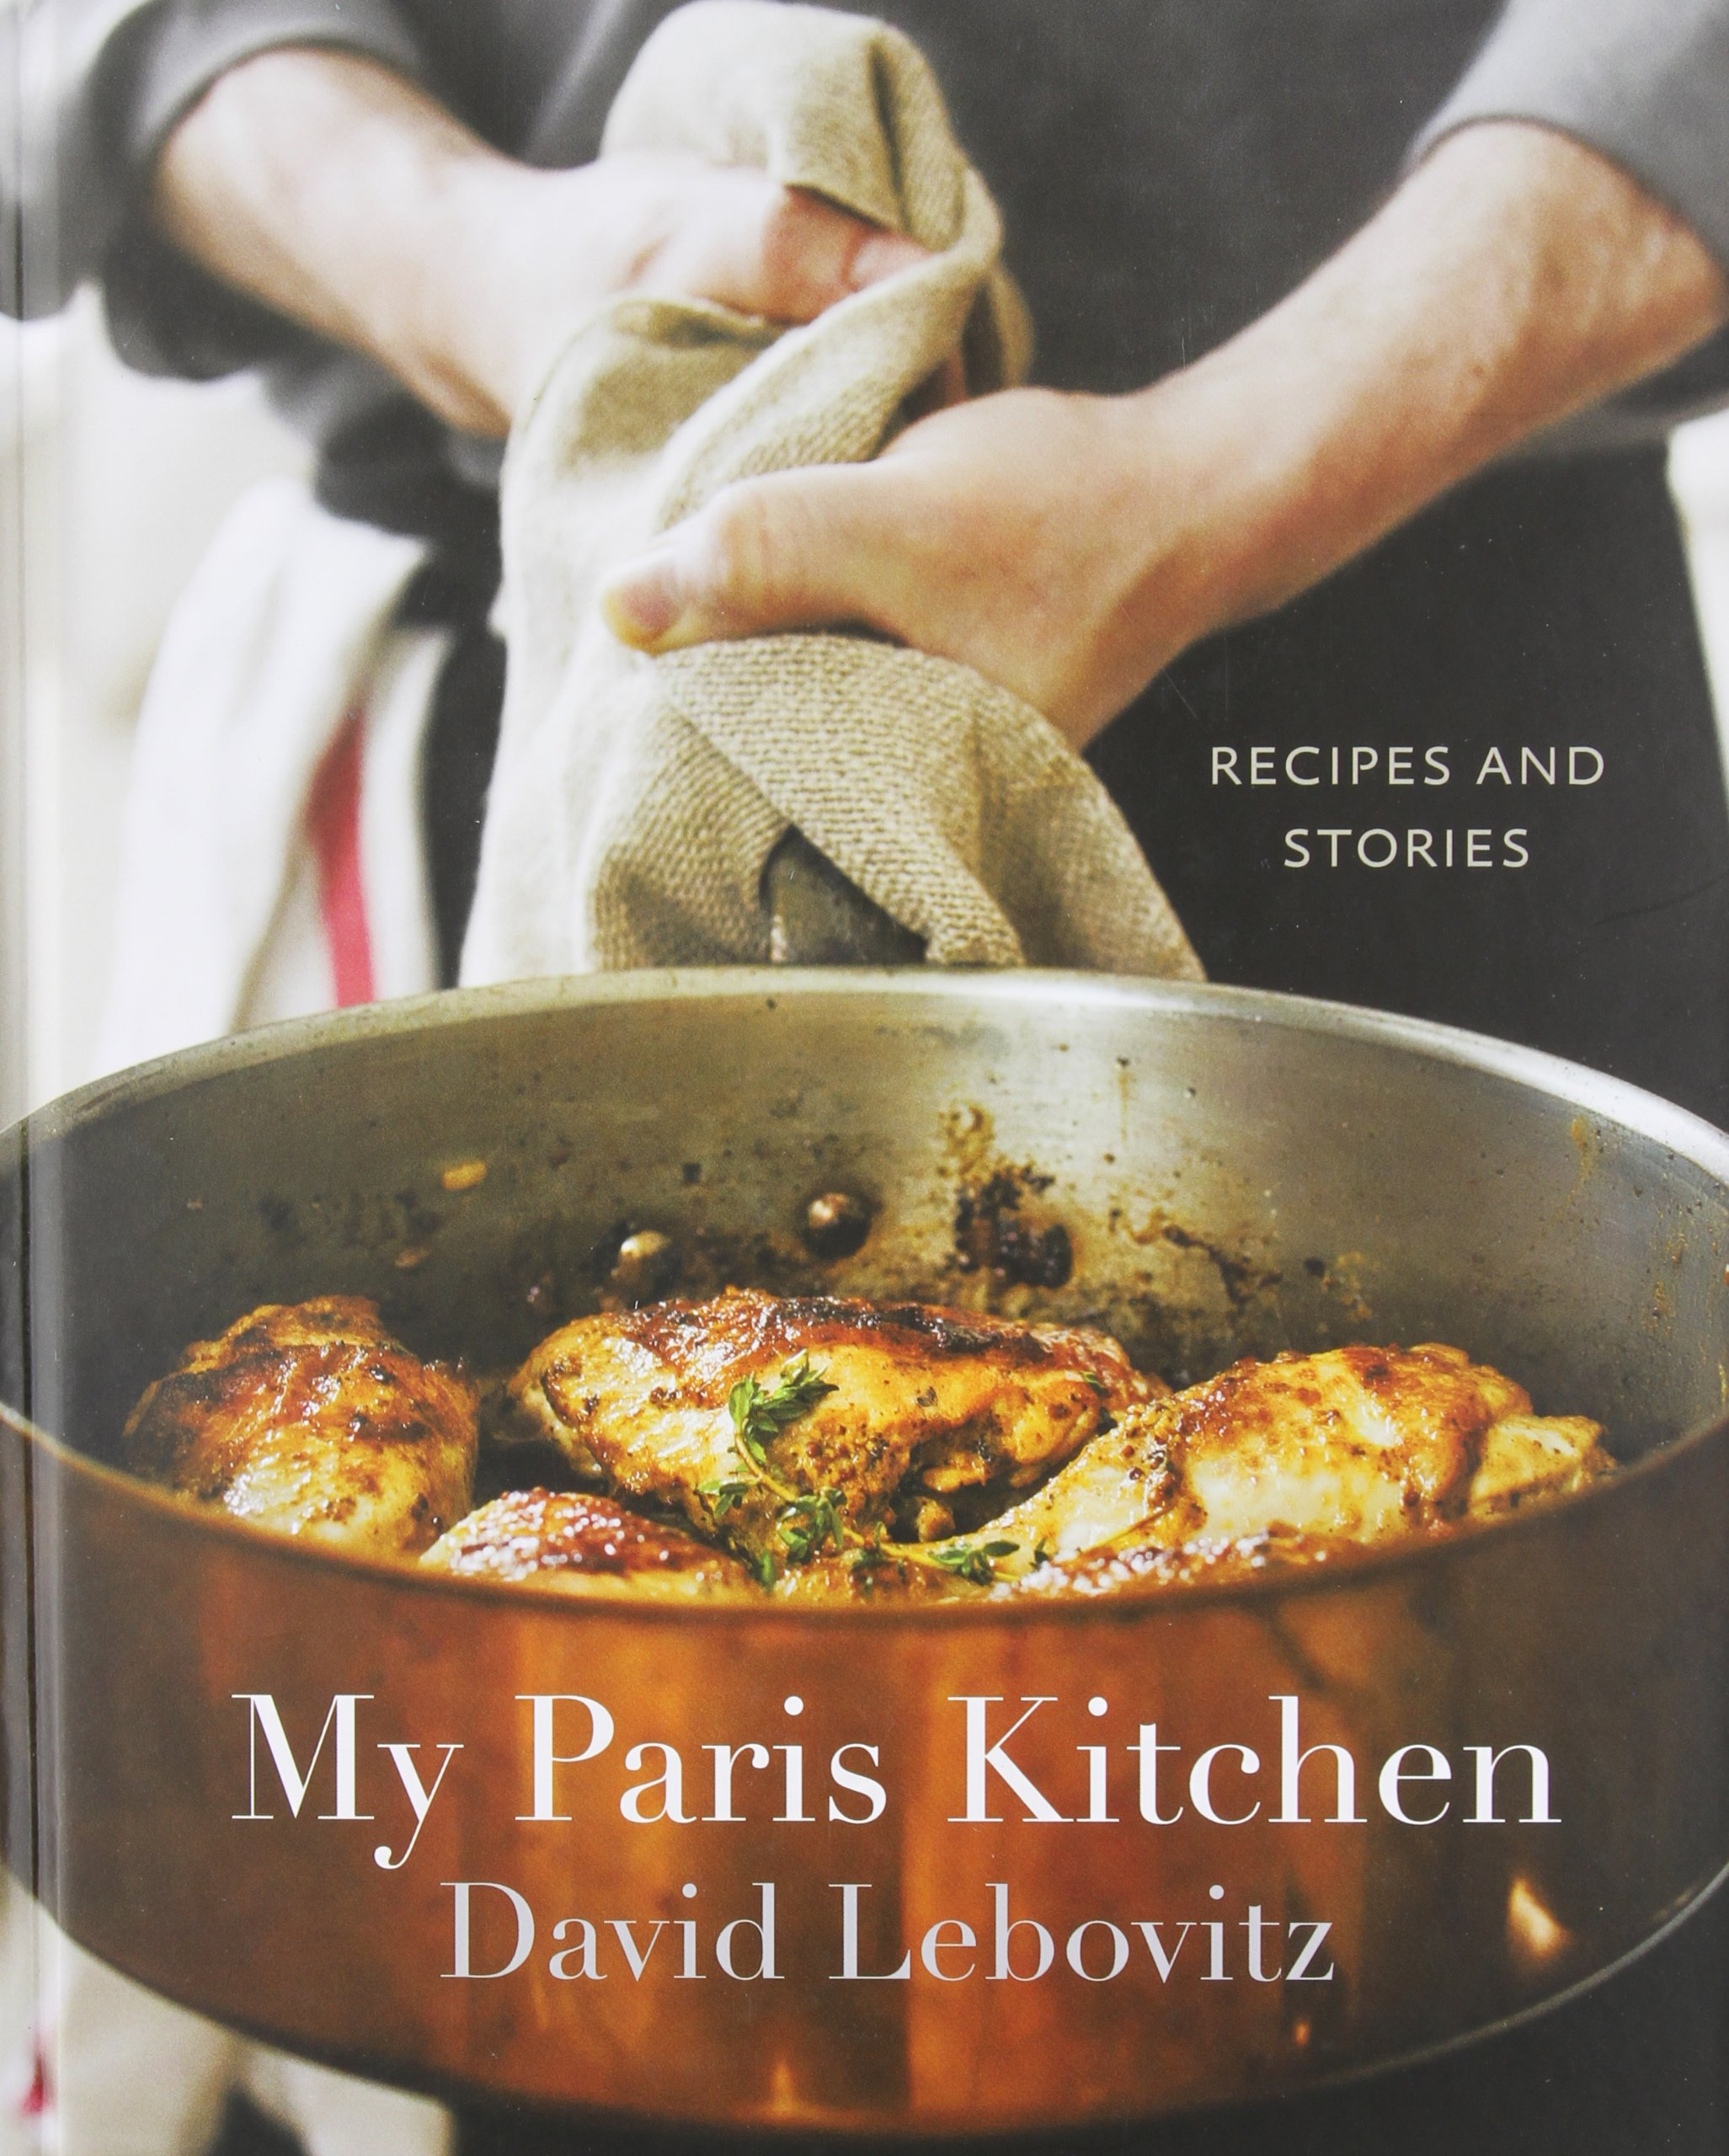 My Paris Kitchen cookbook - Valentine's Day Gift Guide for the Cook www.pinchofnutmeg.com